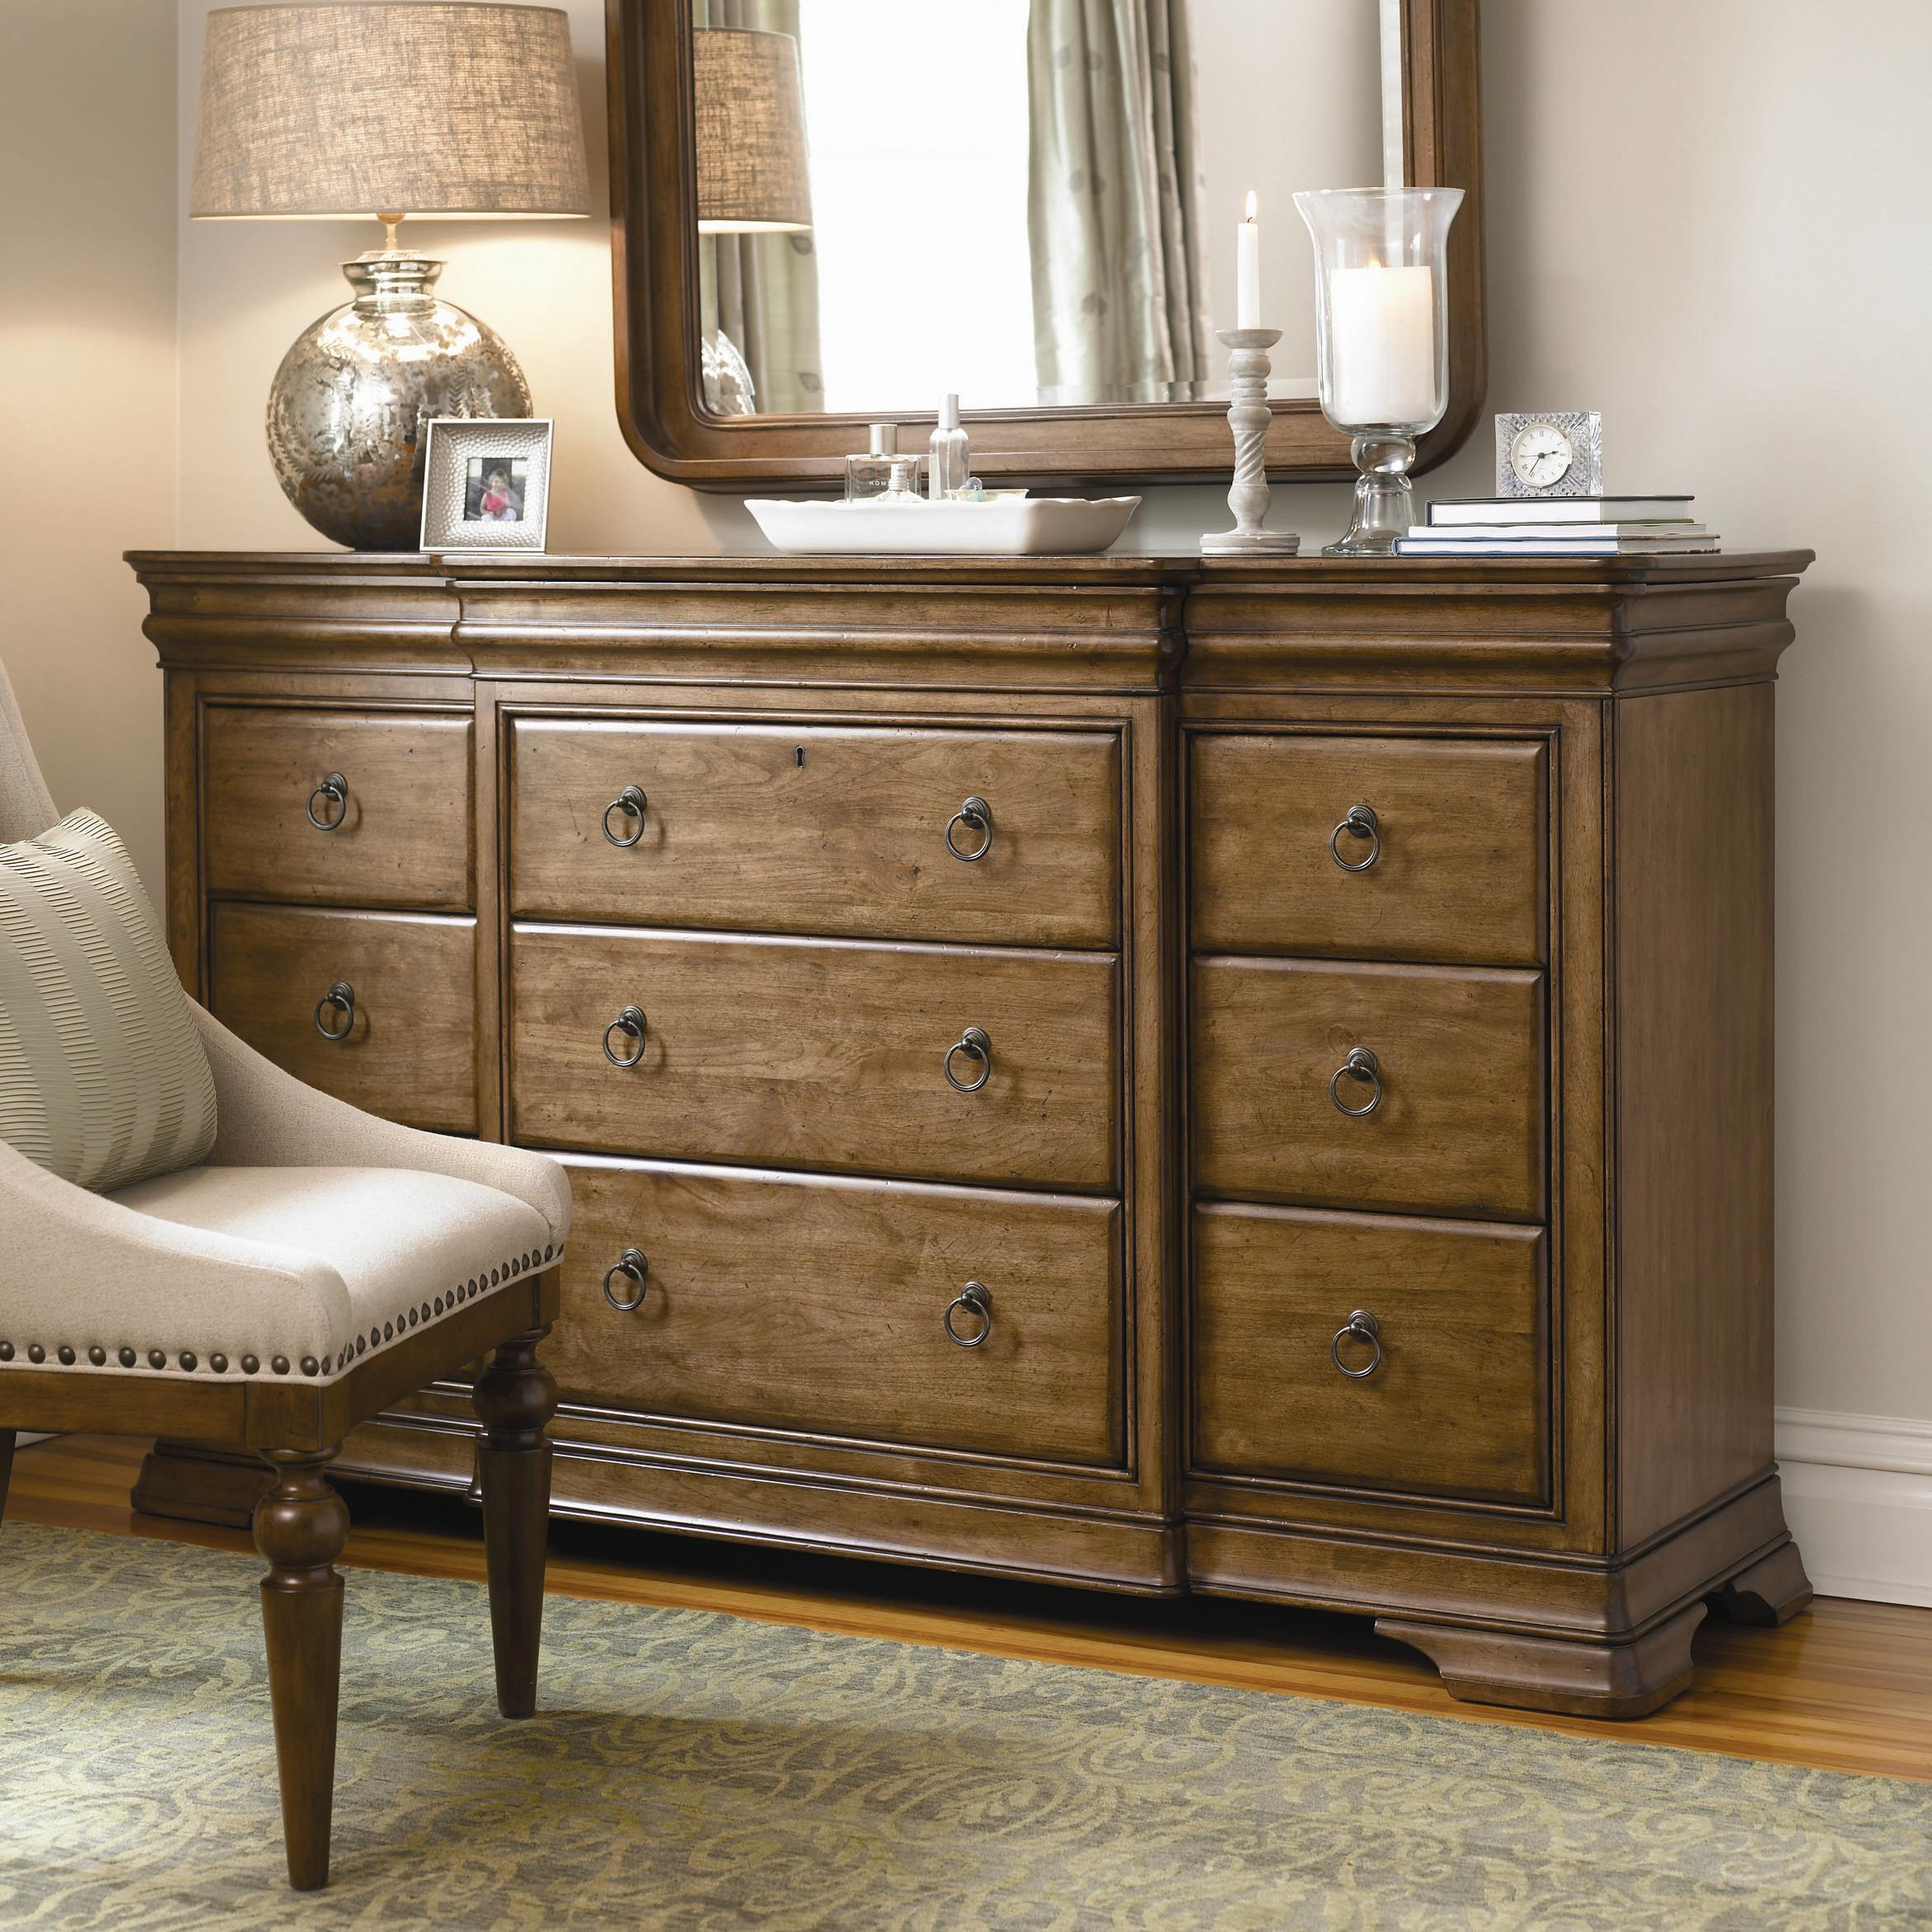 New Lou Drawer Dresser by Universal at Stoney Creek Furniture